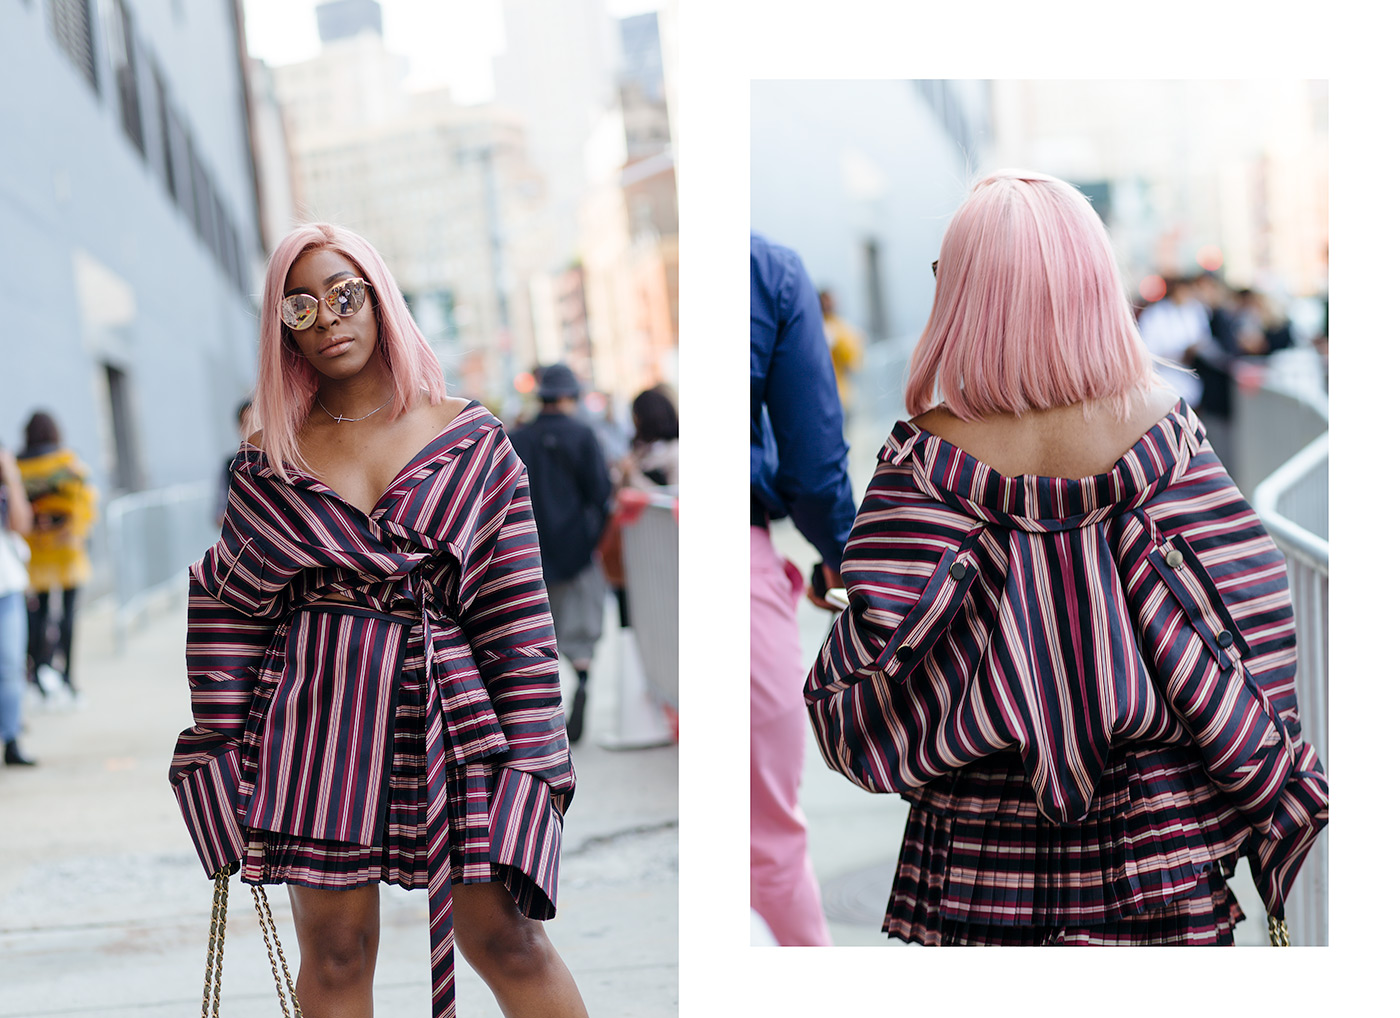 Jackie Aina Pink Hair Street style look at NYFW 2018 photo by Armenyl